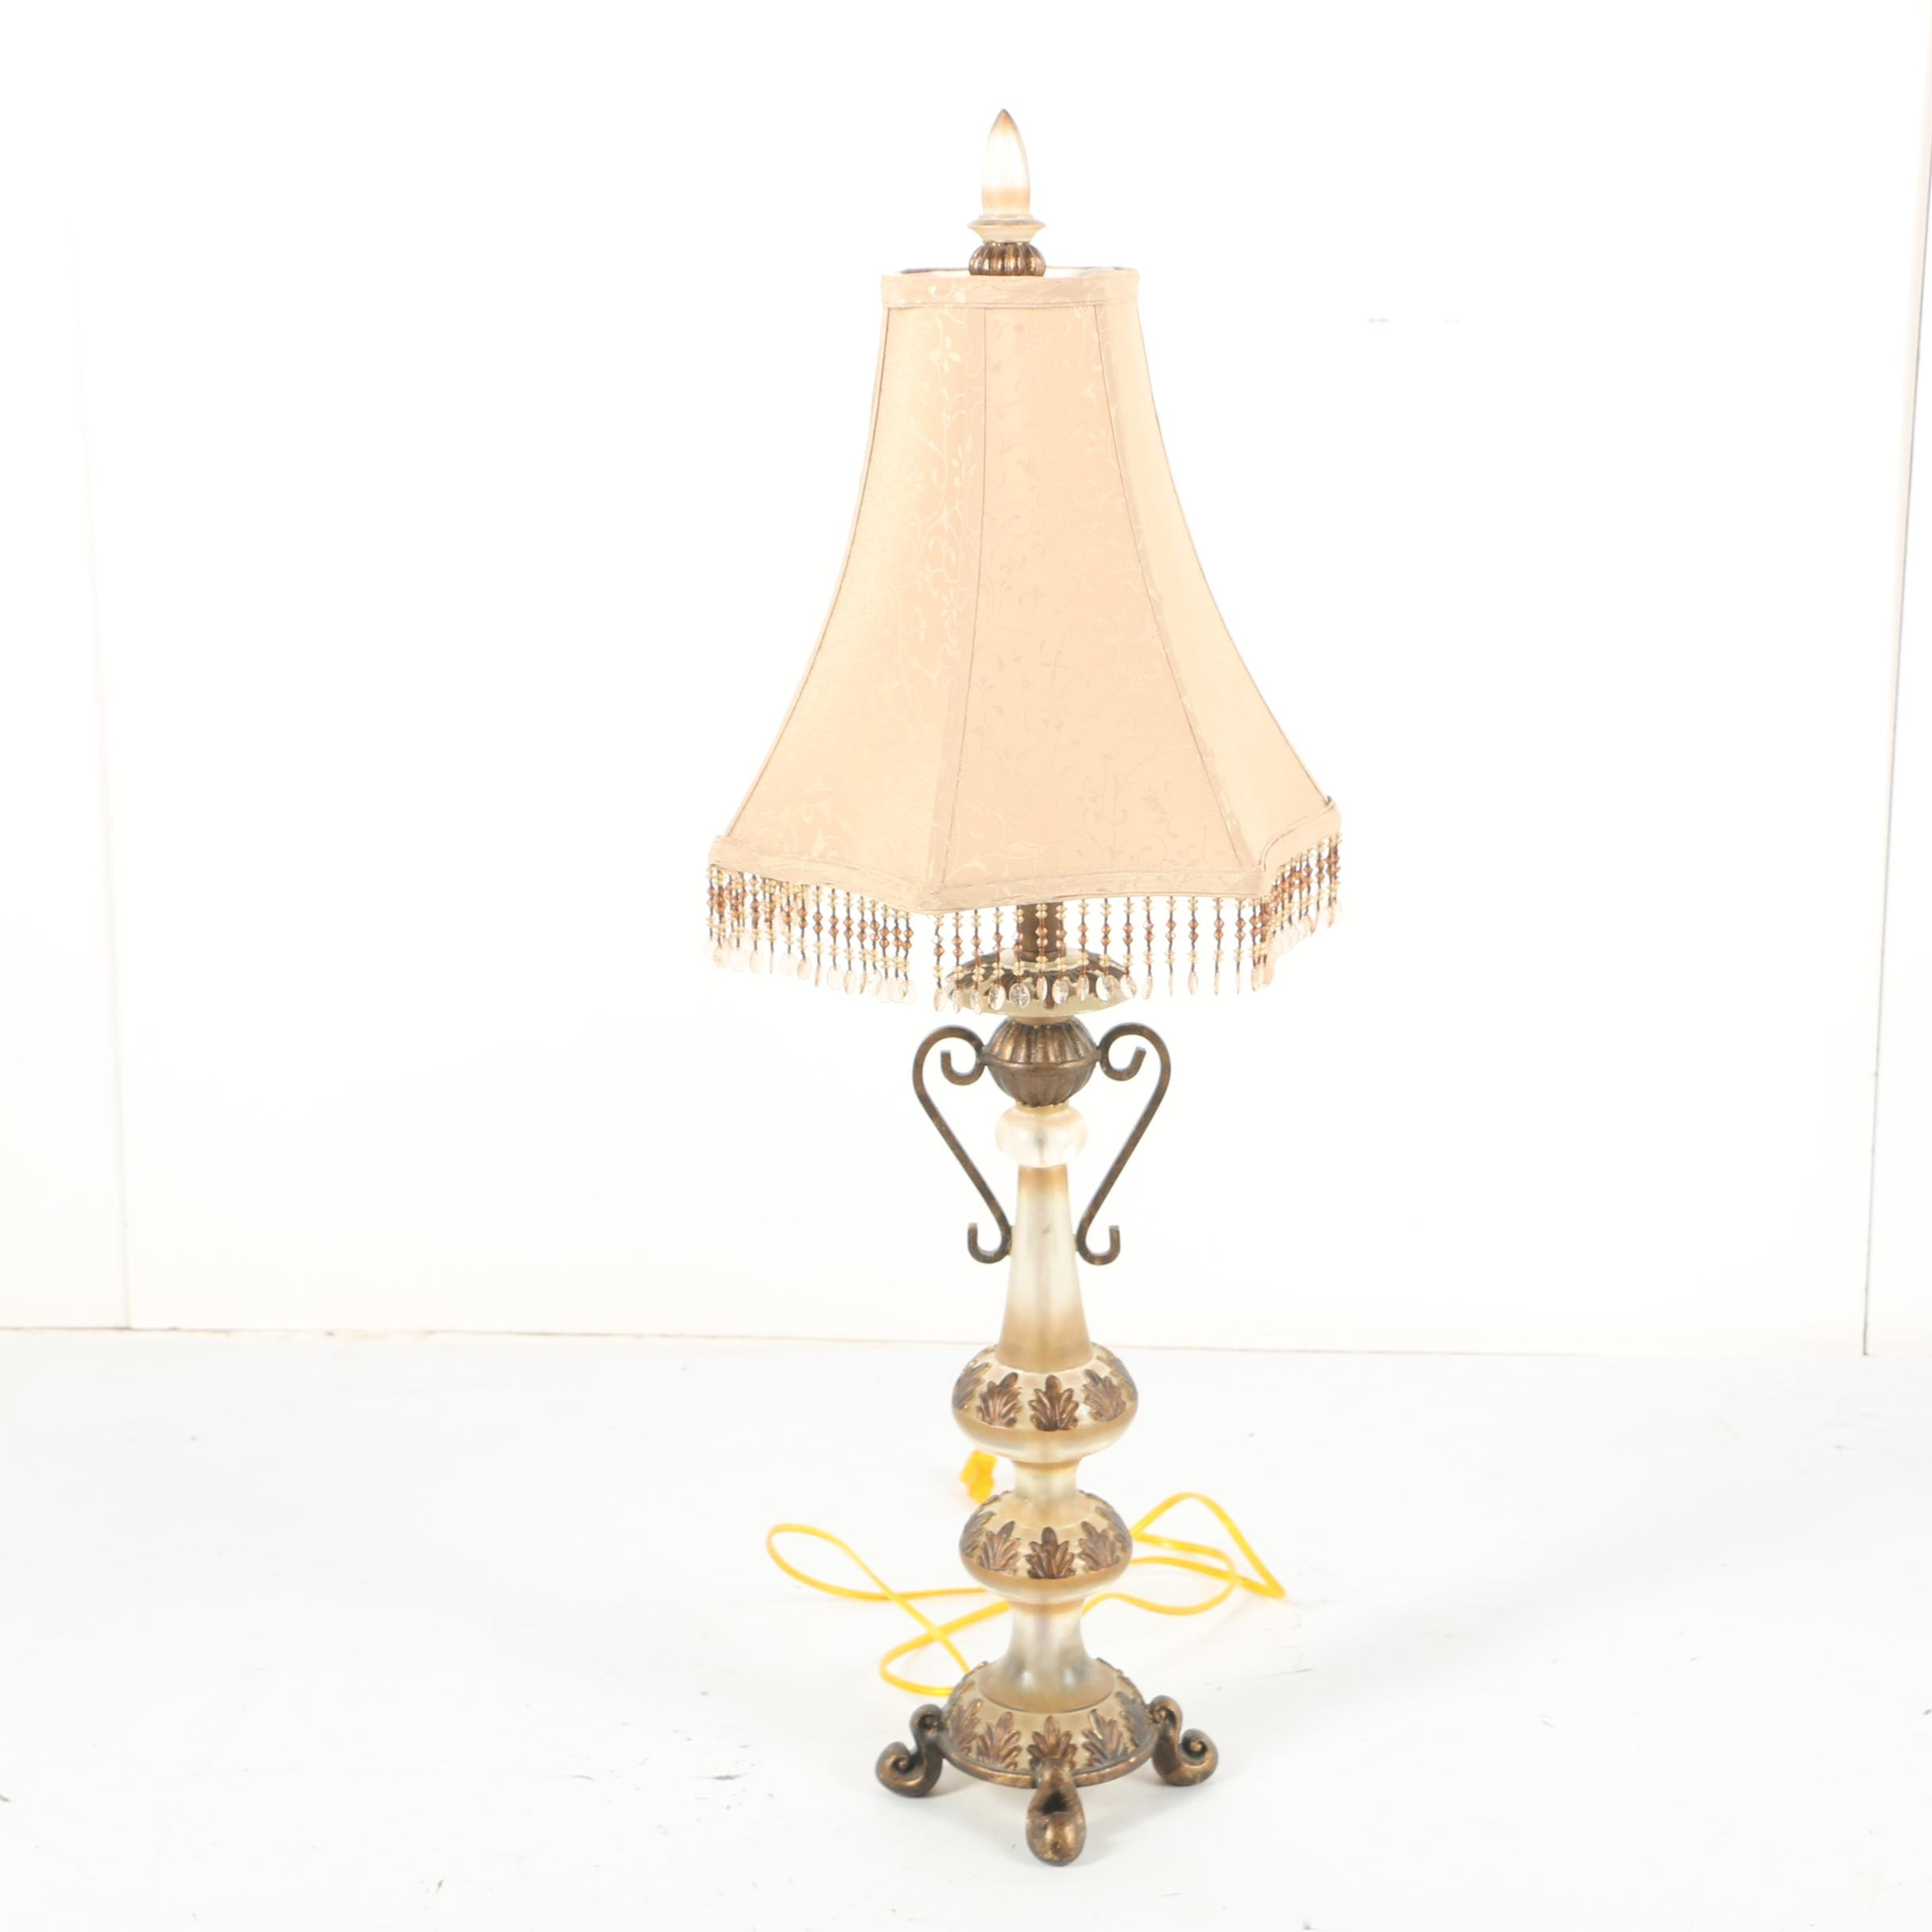 Contemporary Neoclassical Style Table Lamp with Beaded Fabric Shade